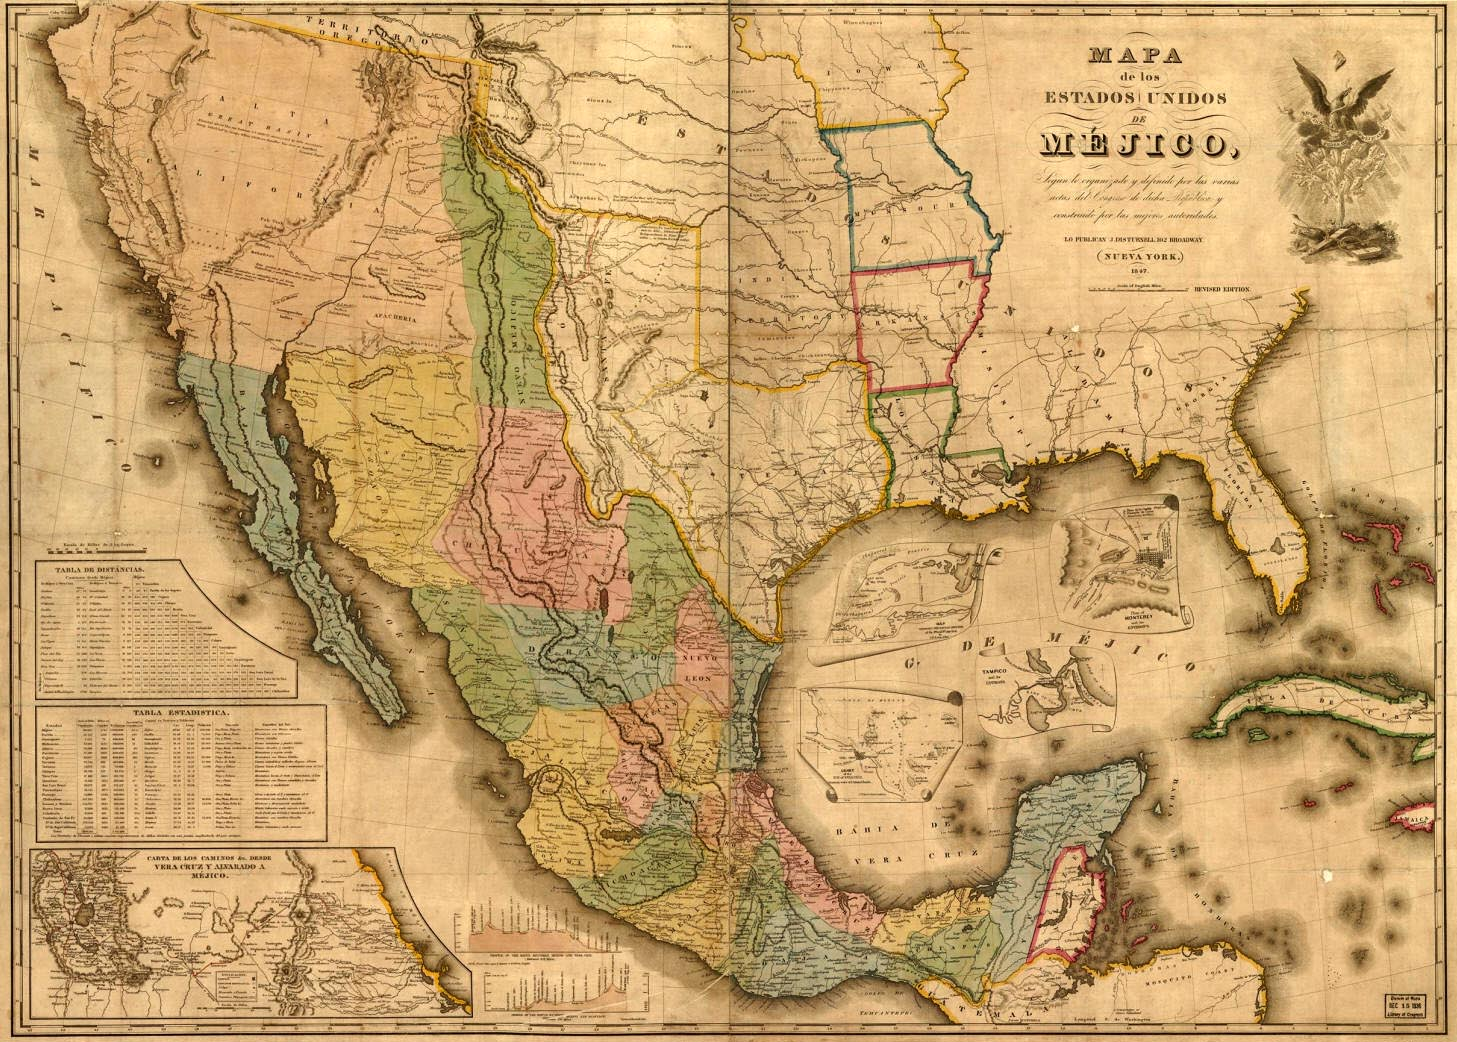 The republic of texas during the mexican war